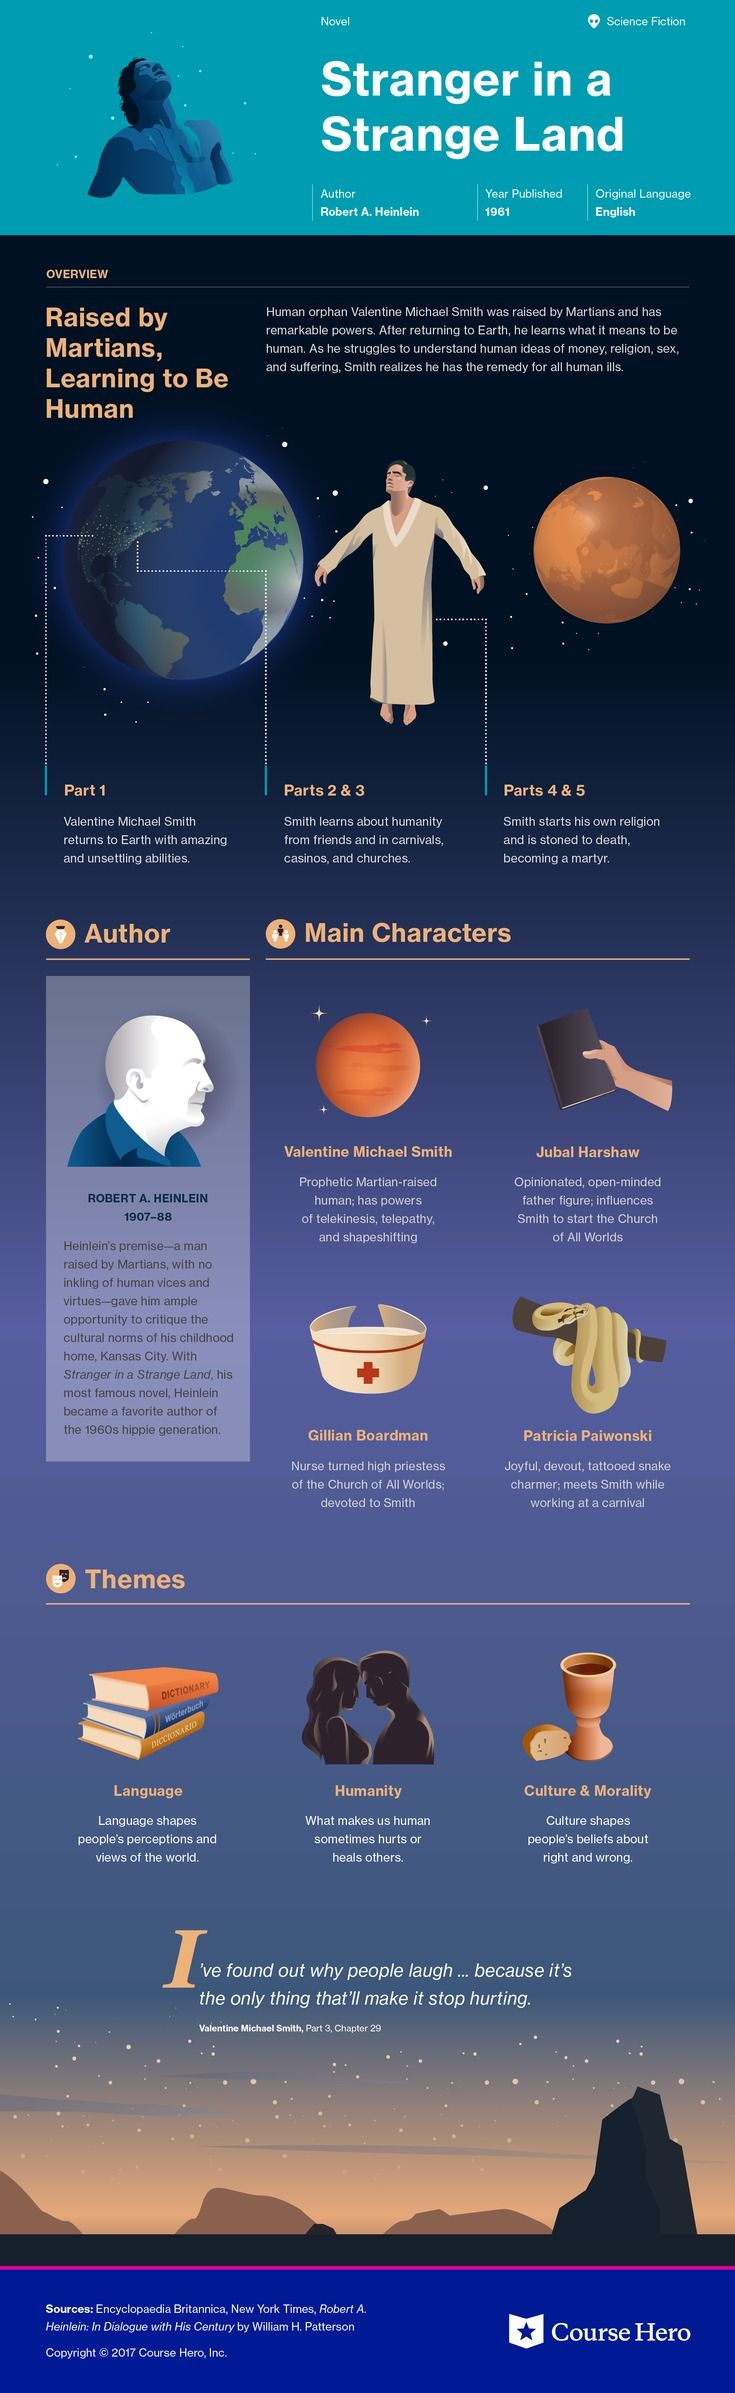 This @CourseHero infographic on Stranger in a Strange Land is both visually stunning and informative!